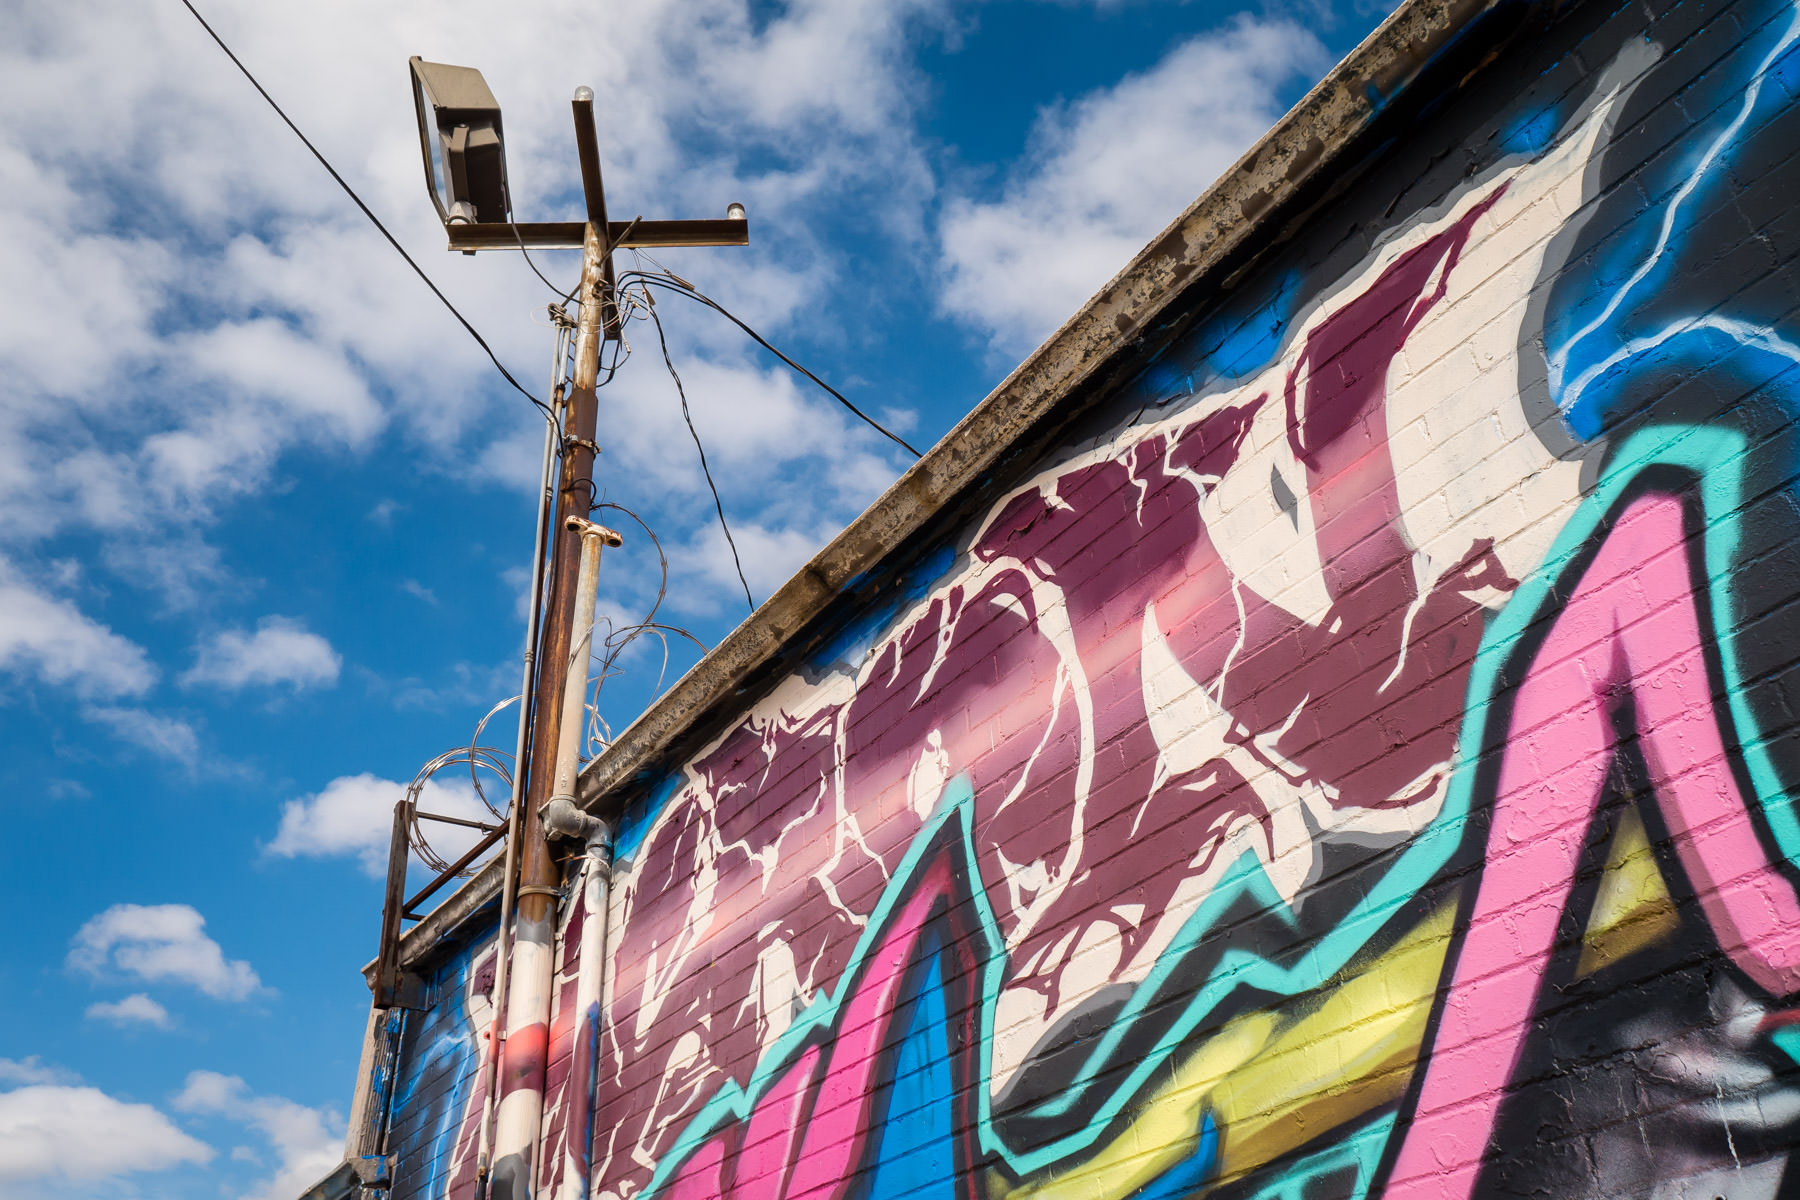 An indecipherable graffiti mural found on a building in Dallas' Deep Ellum neighborhood.